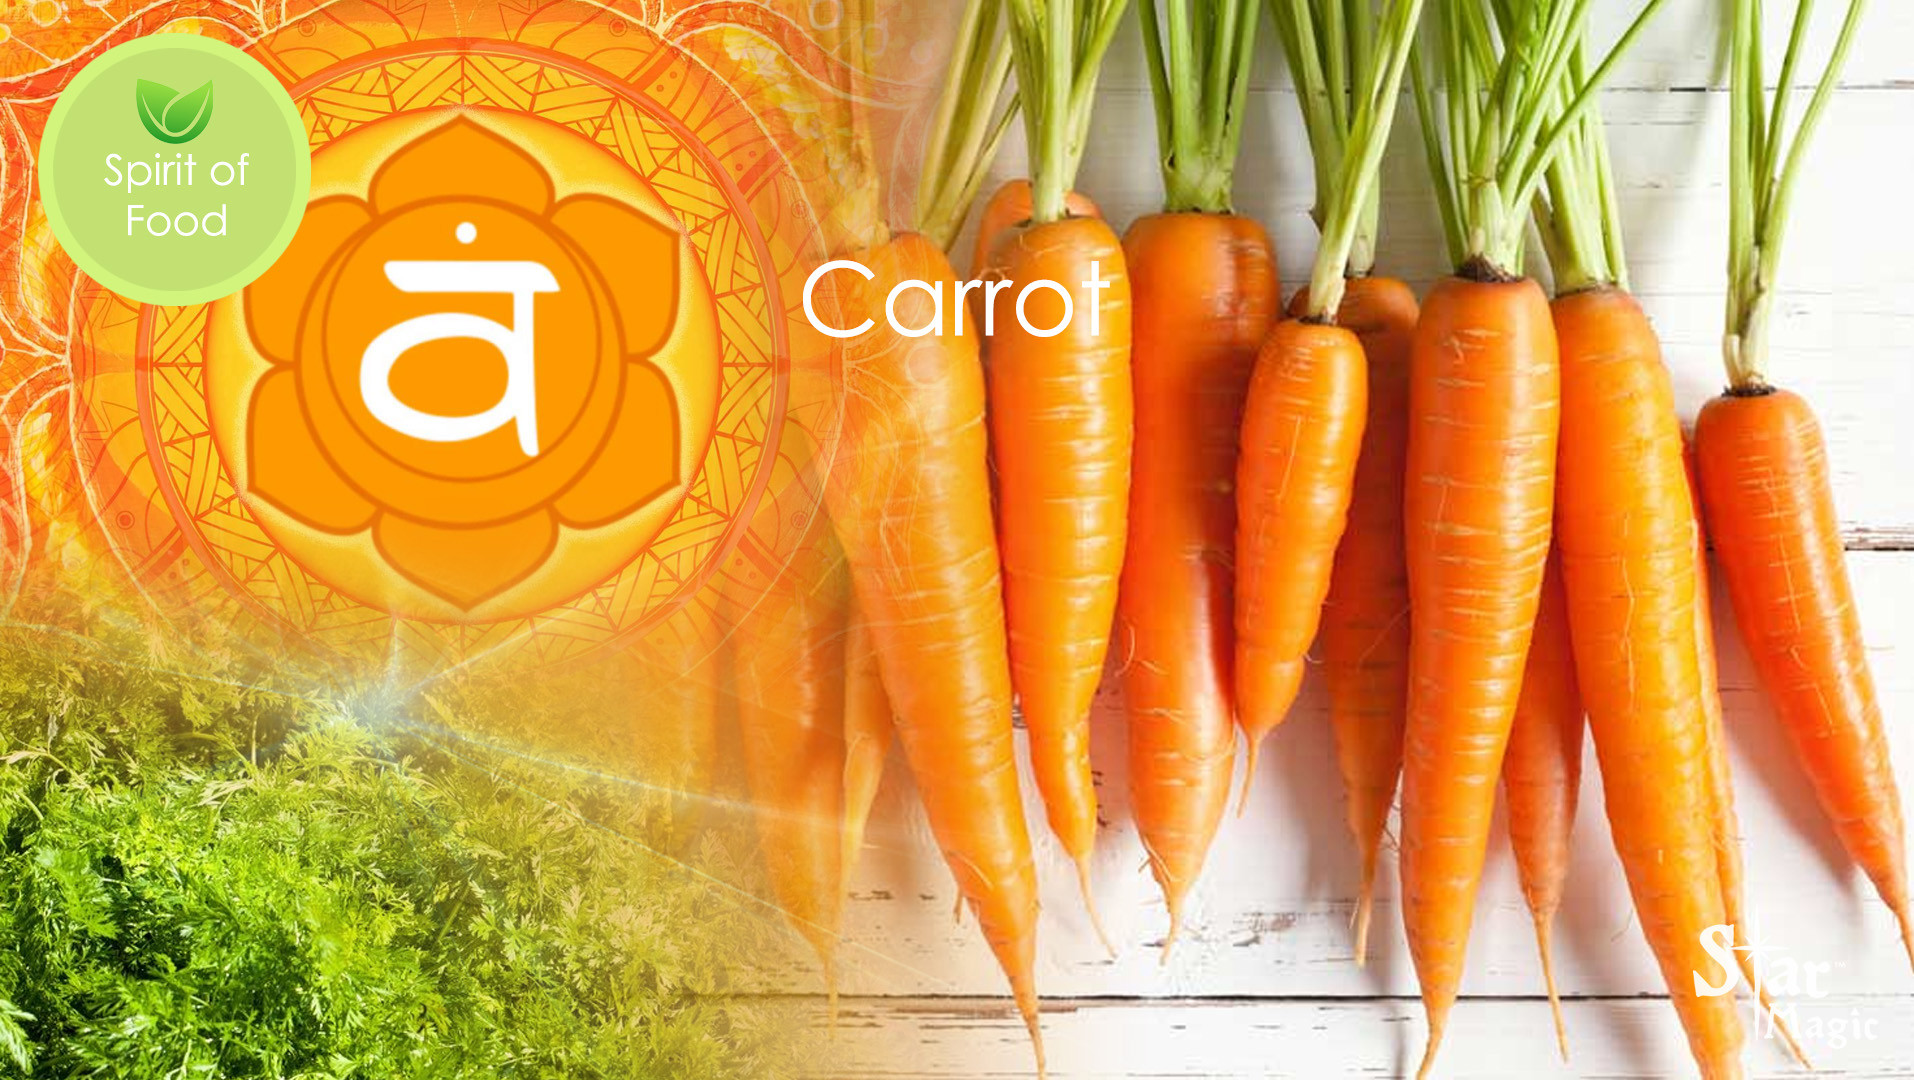 Spirit Food – Carrot